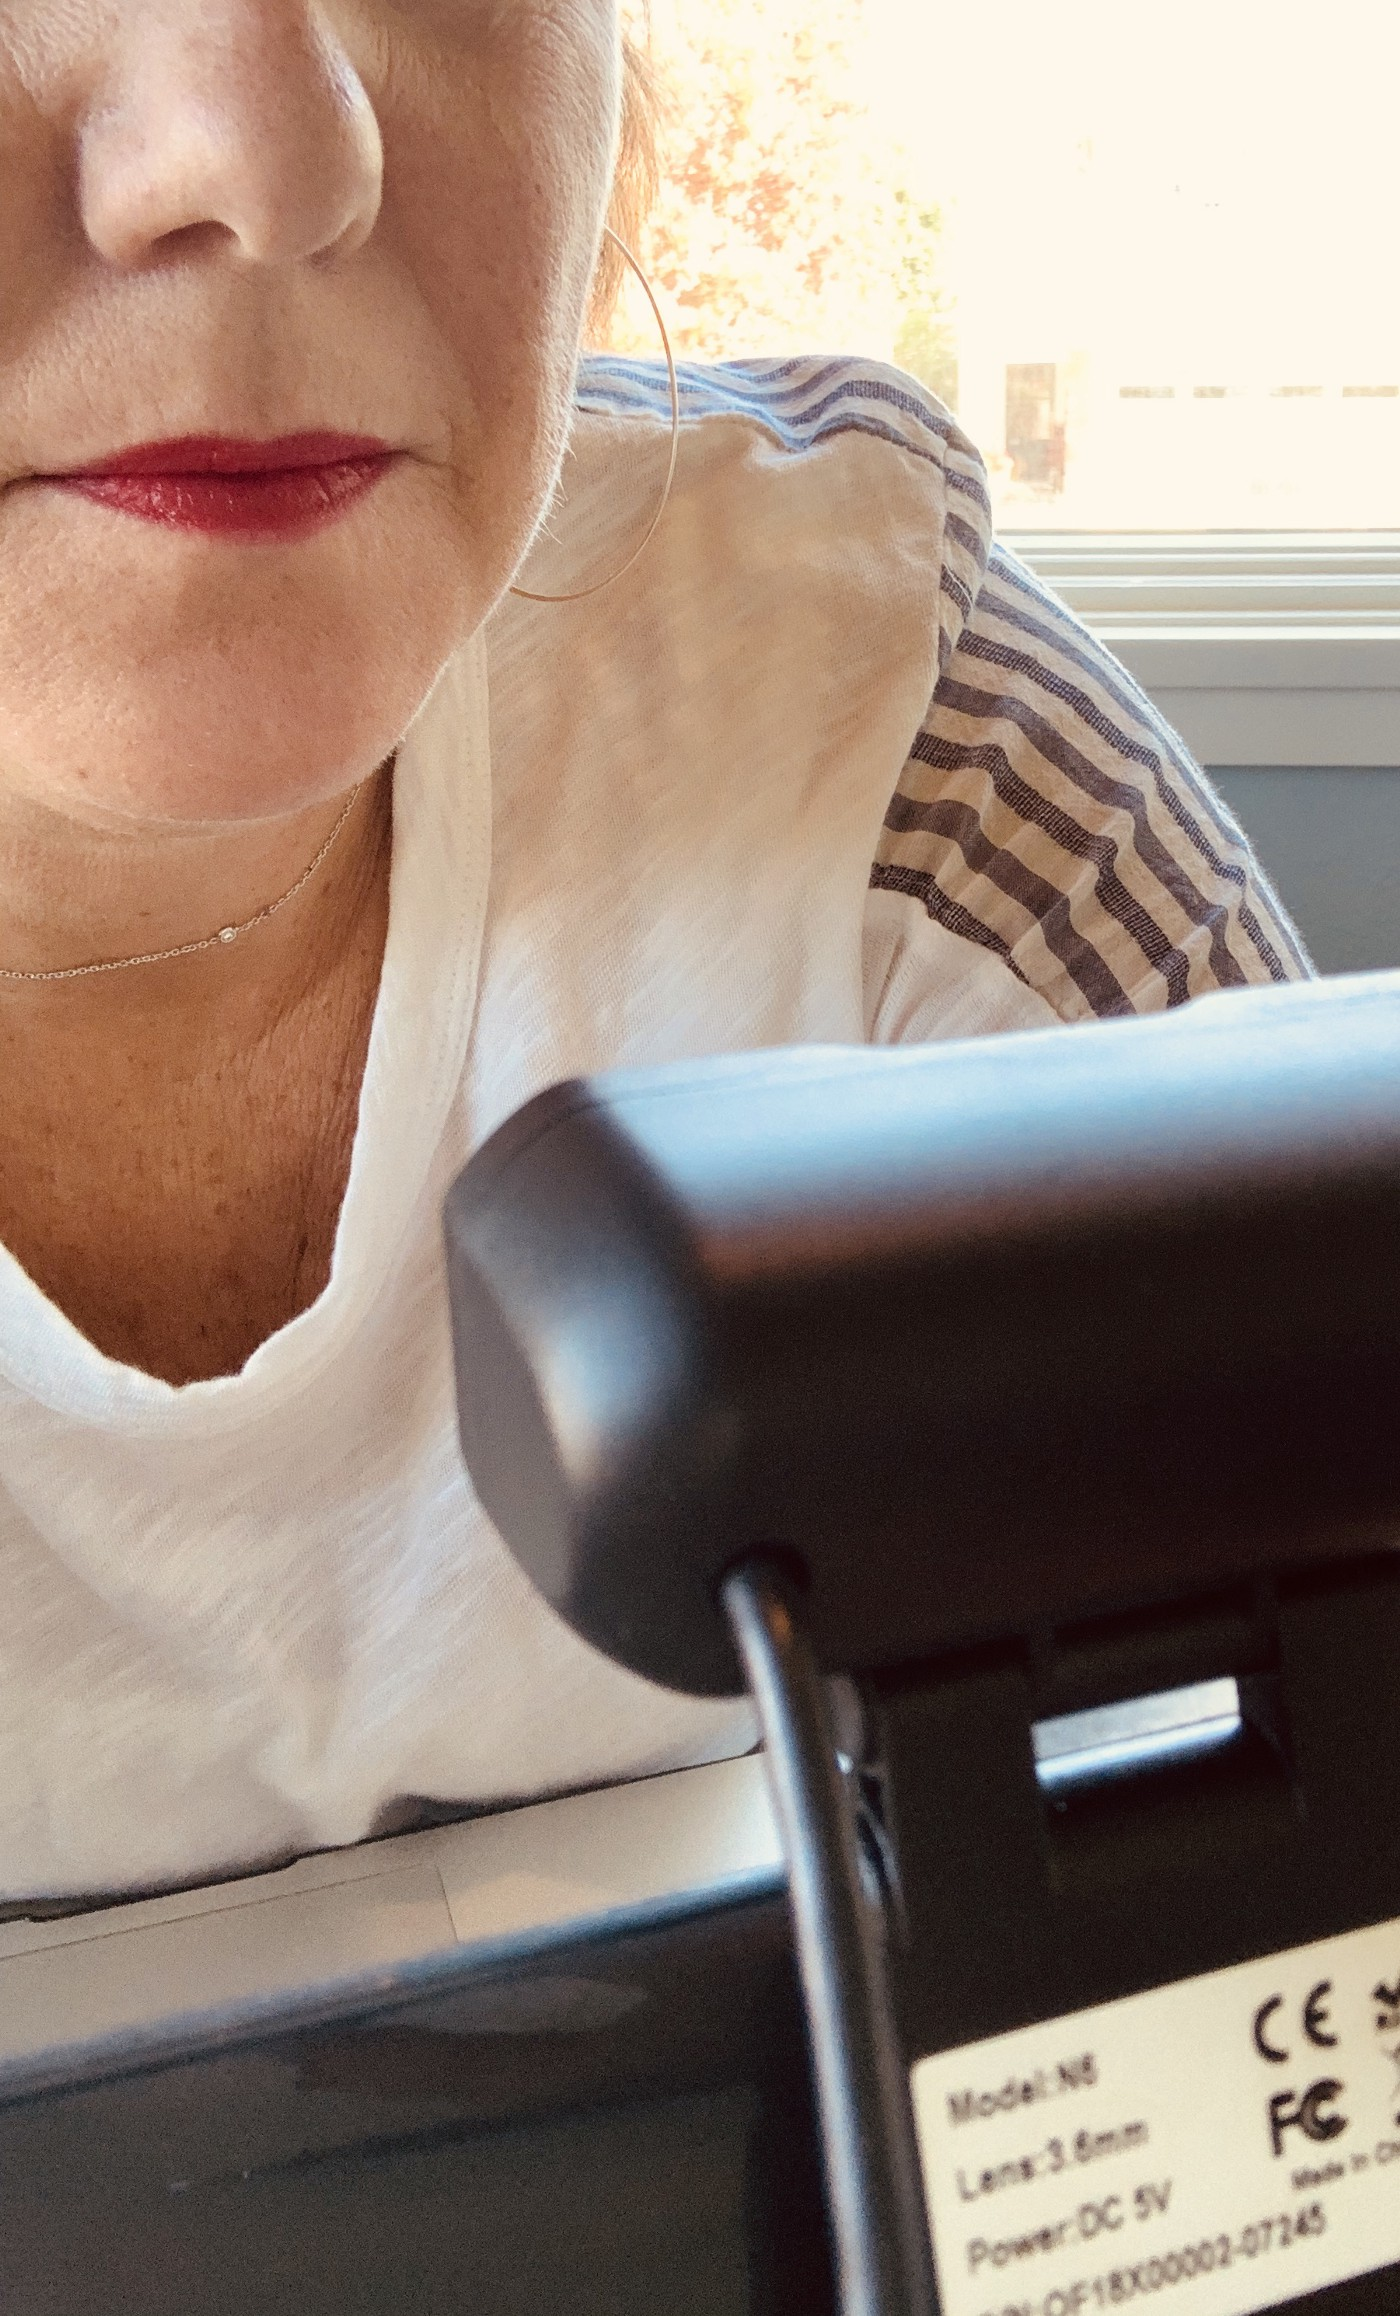 Partial picture of woman's face with red lips looking at a lap top with a camera.